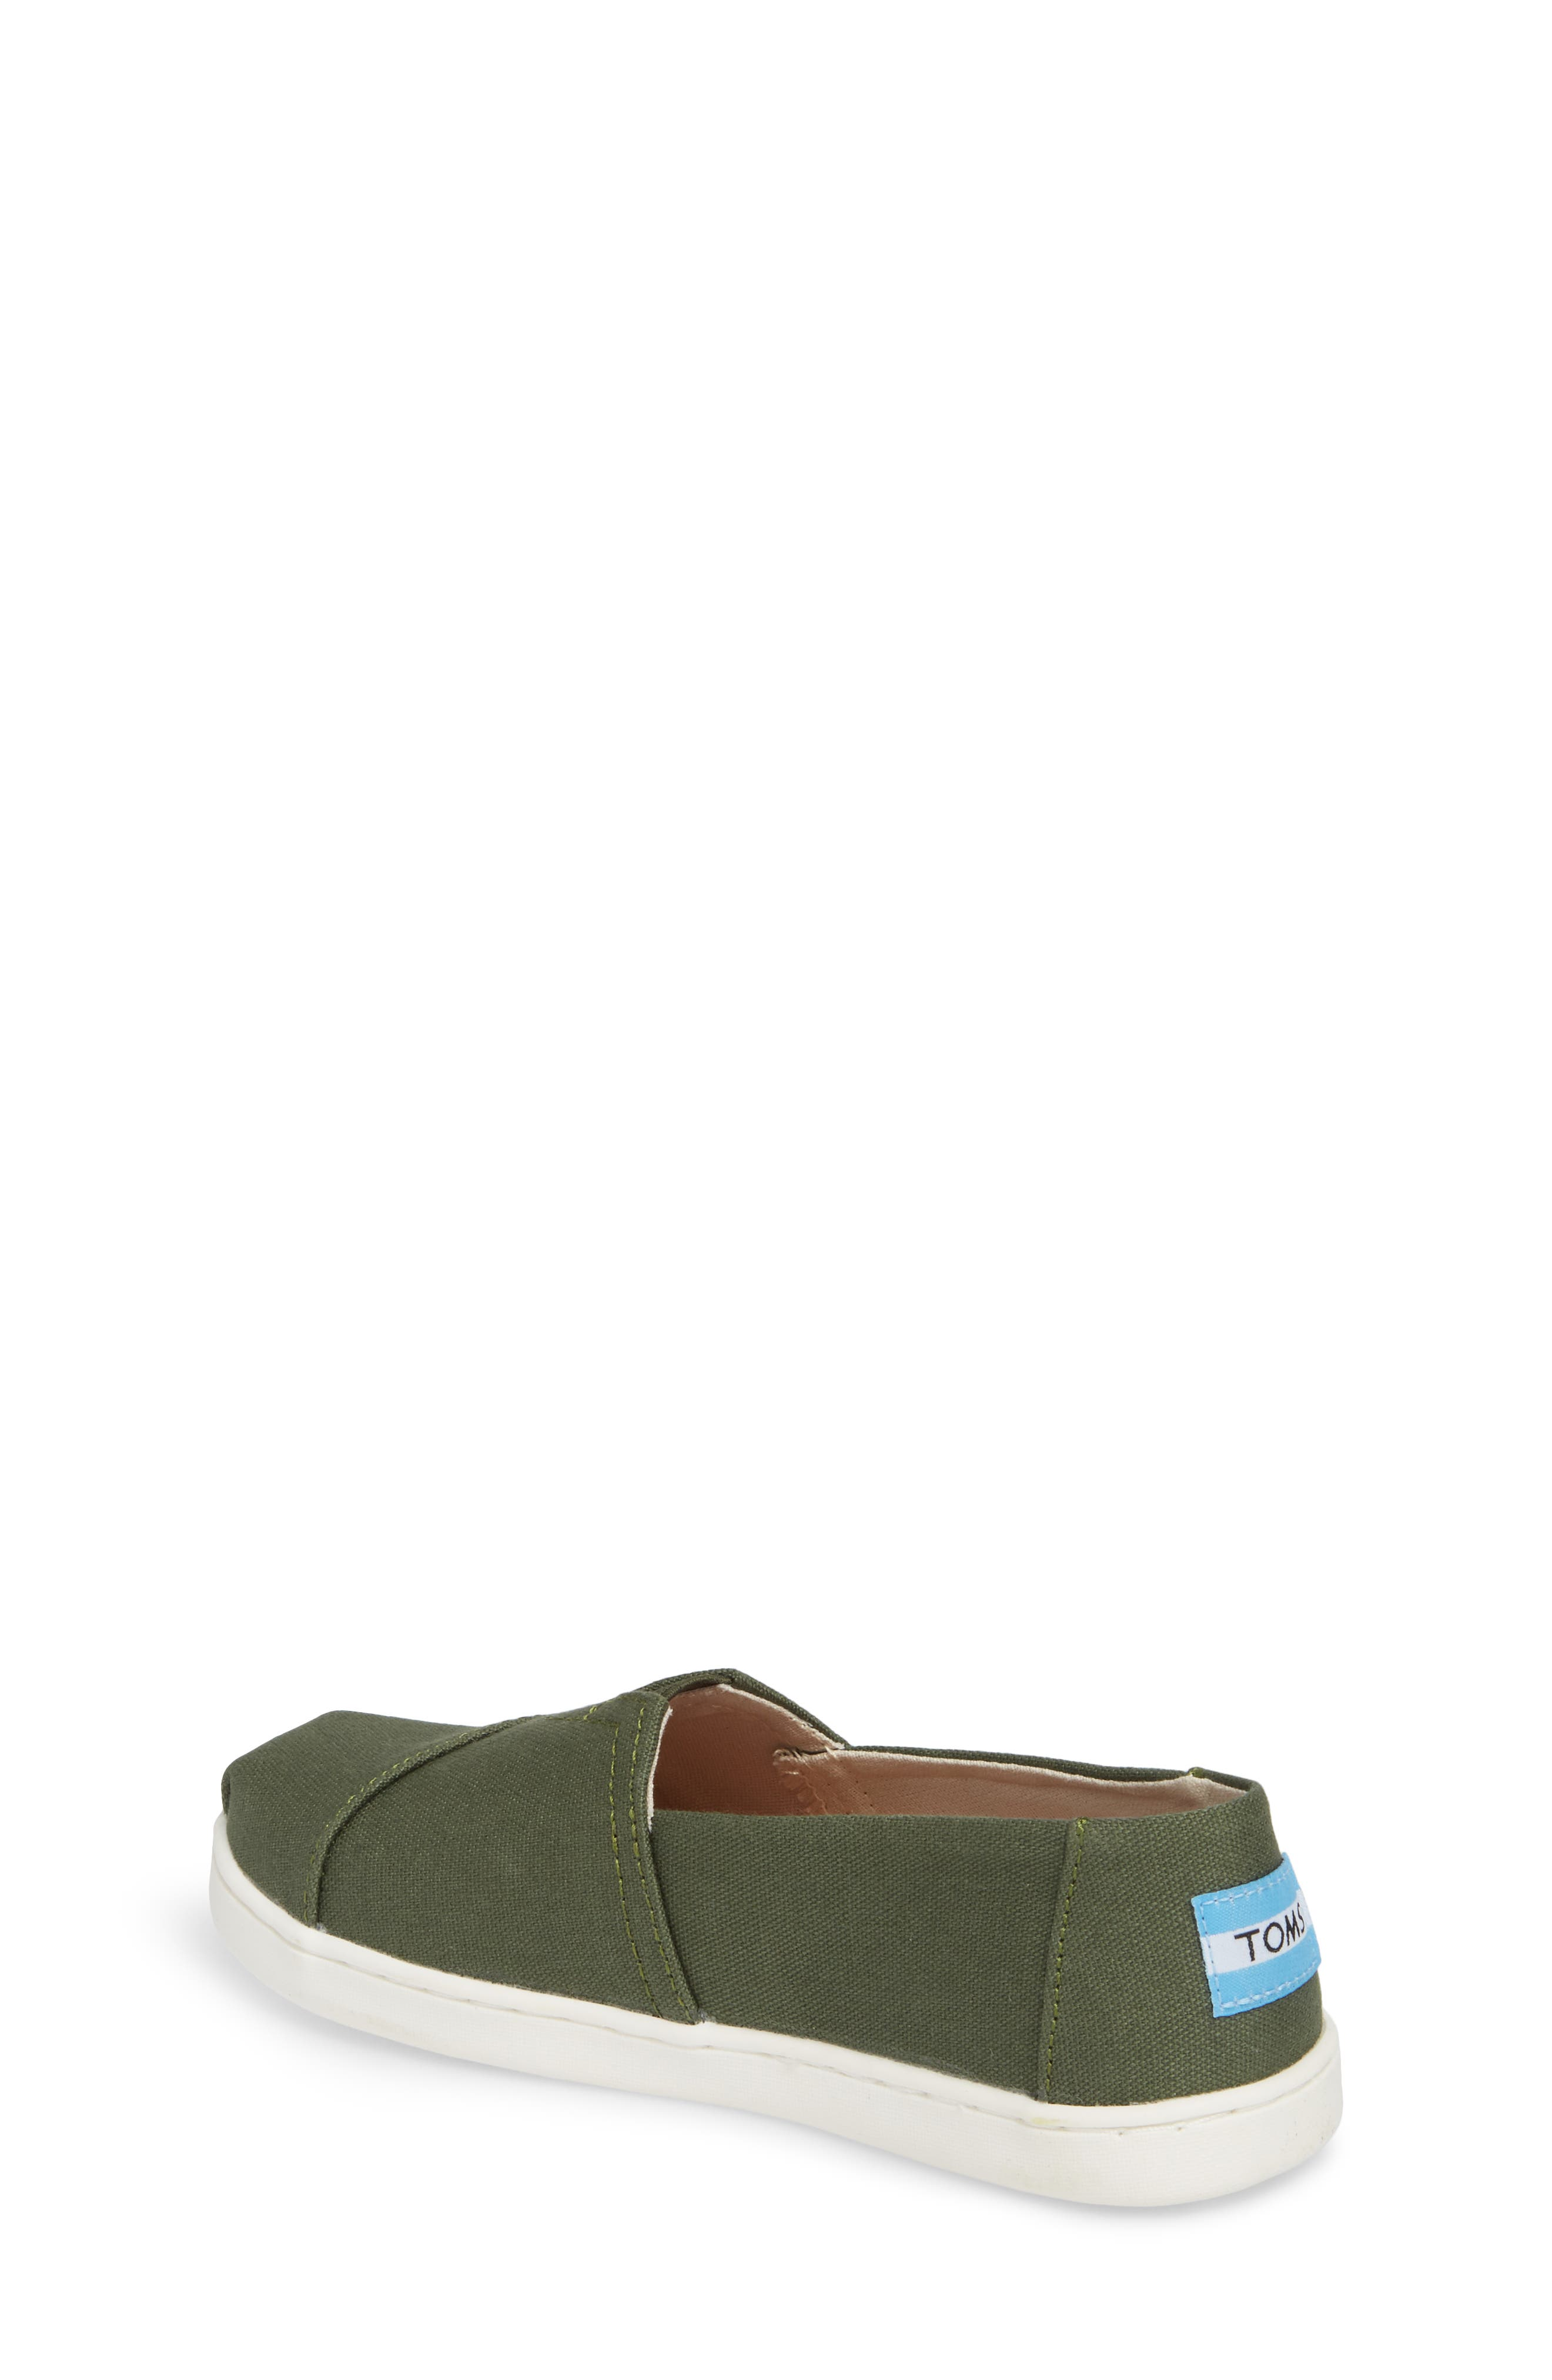 Heritage Canvas Slip-On,                             Alternate thumbnail 2, color,                             310